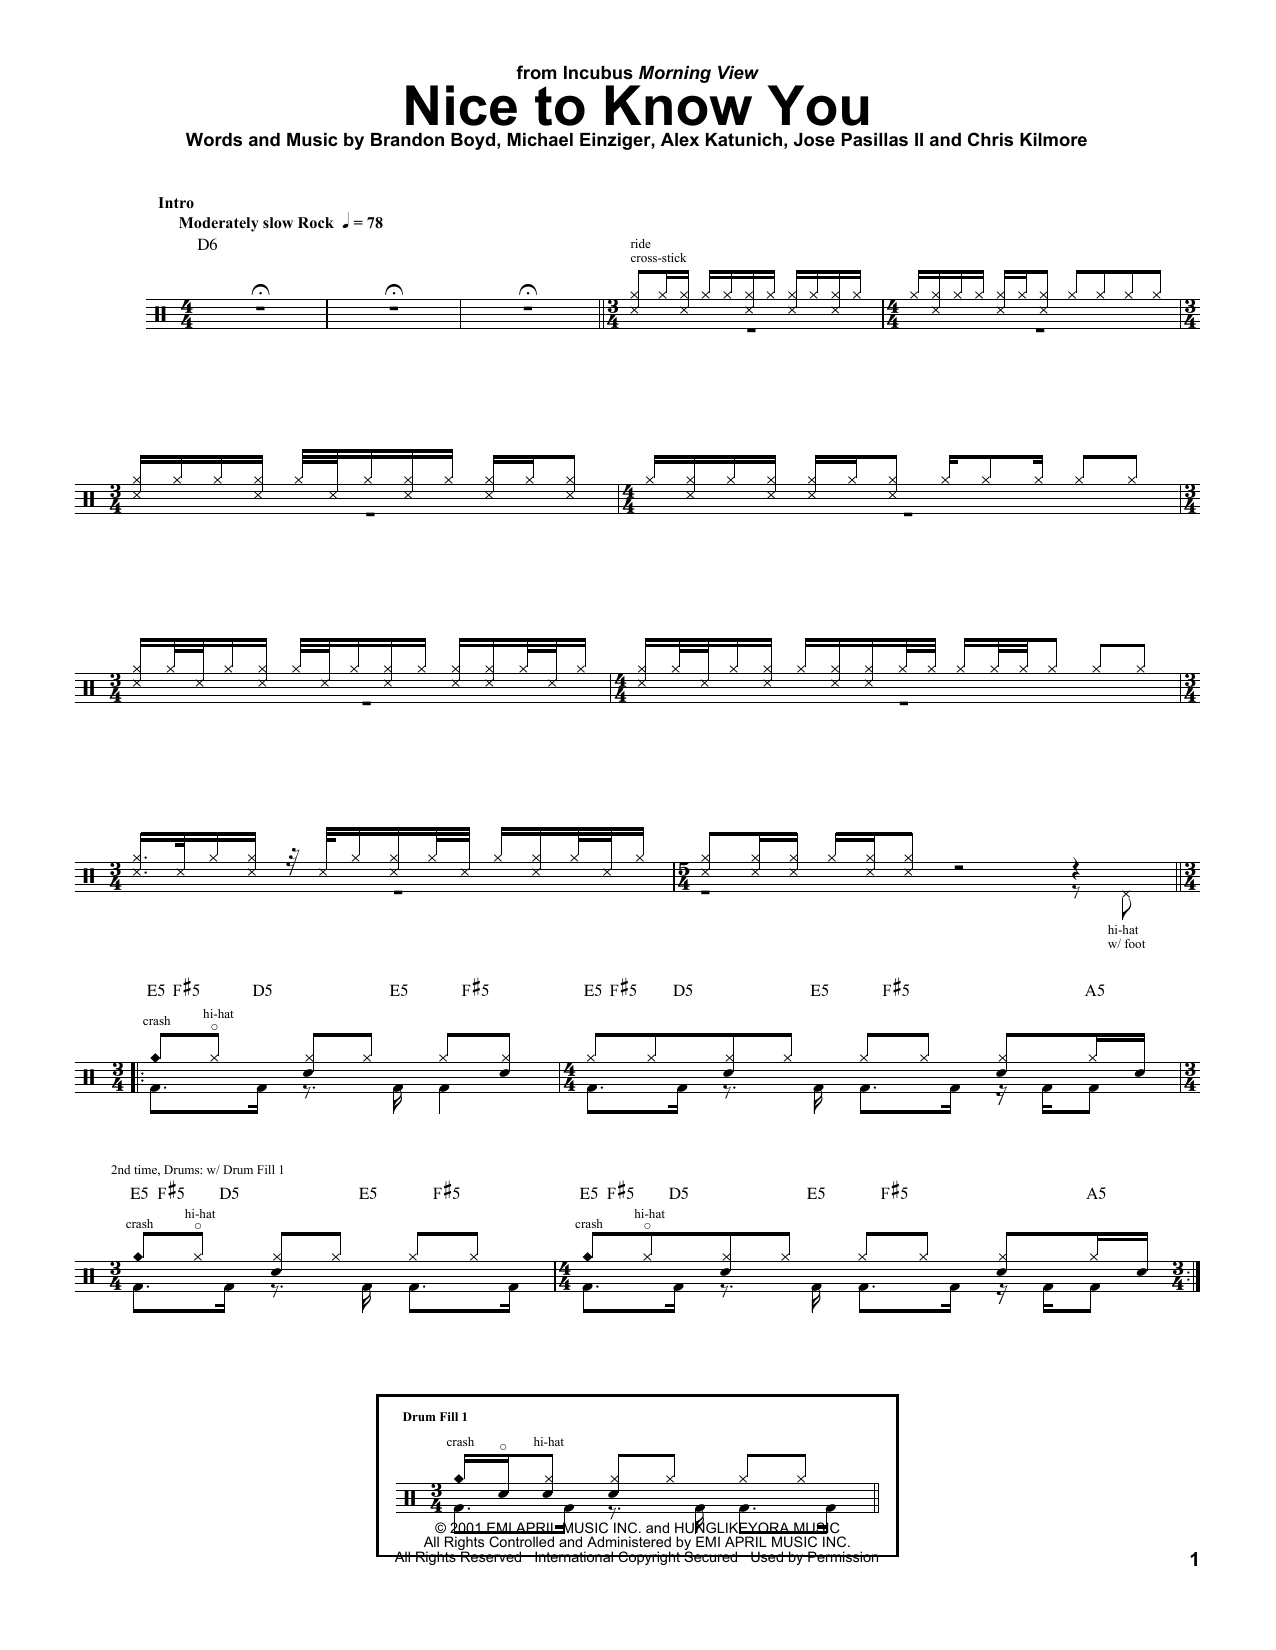 Sheet music digital files to print licensed jose pasillas ii nice to know you hexwebz Image collections